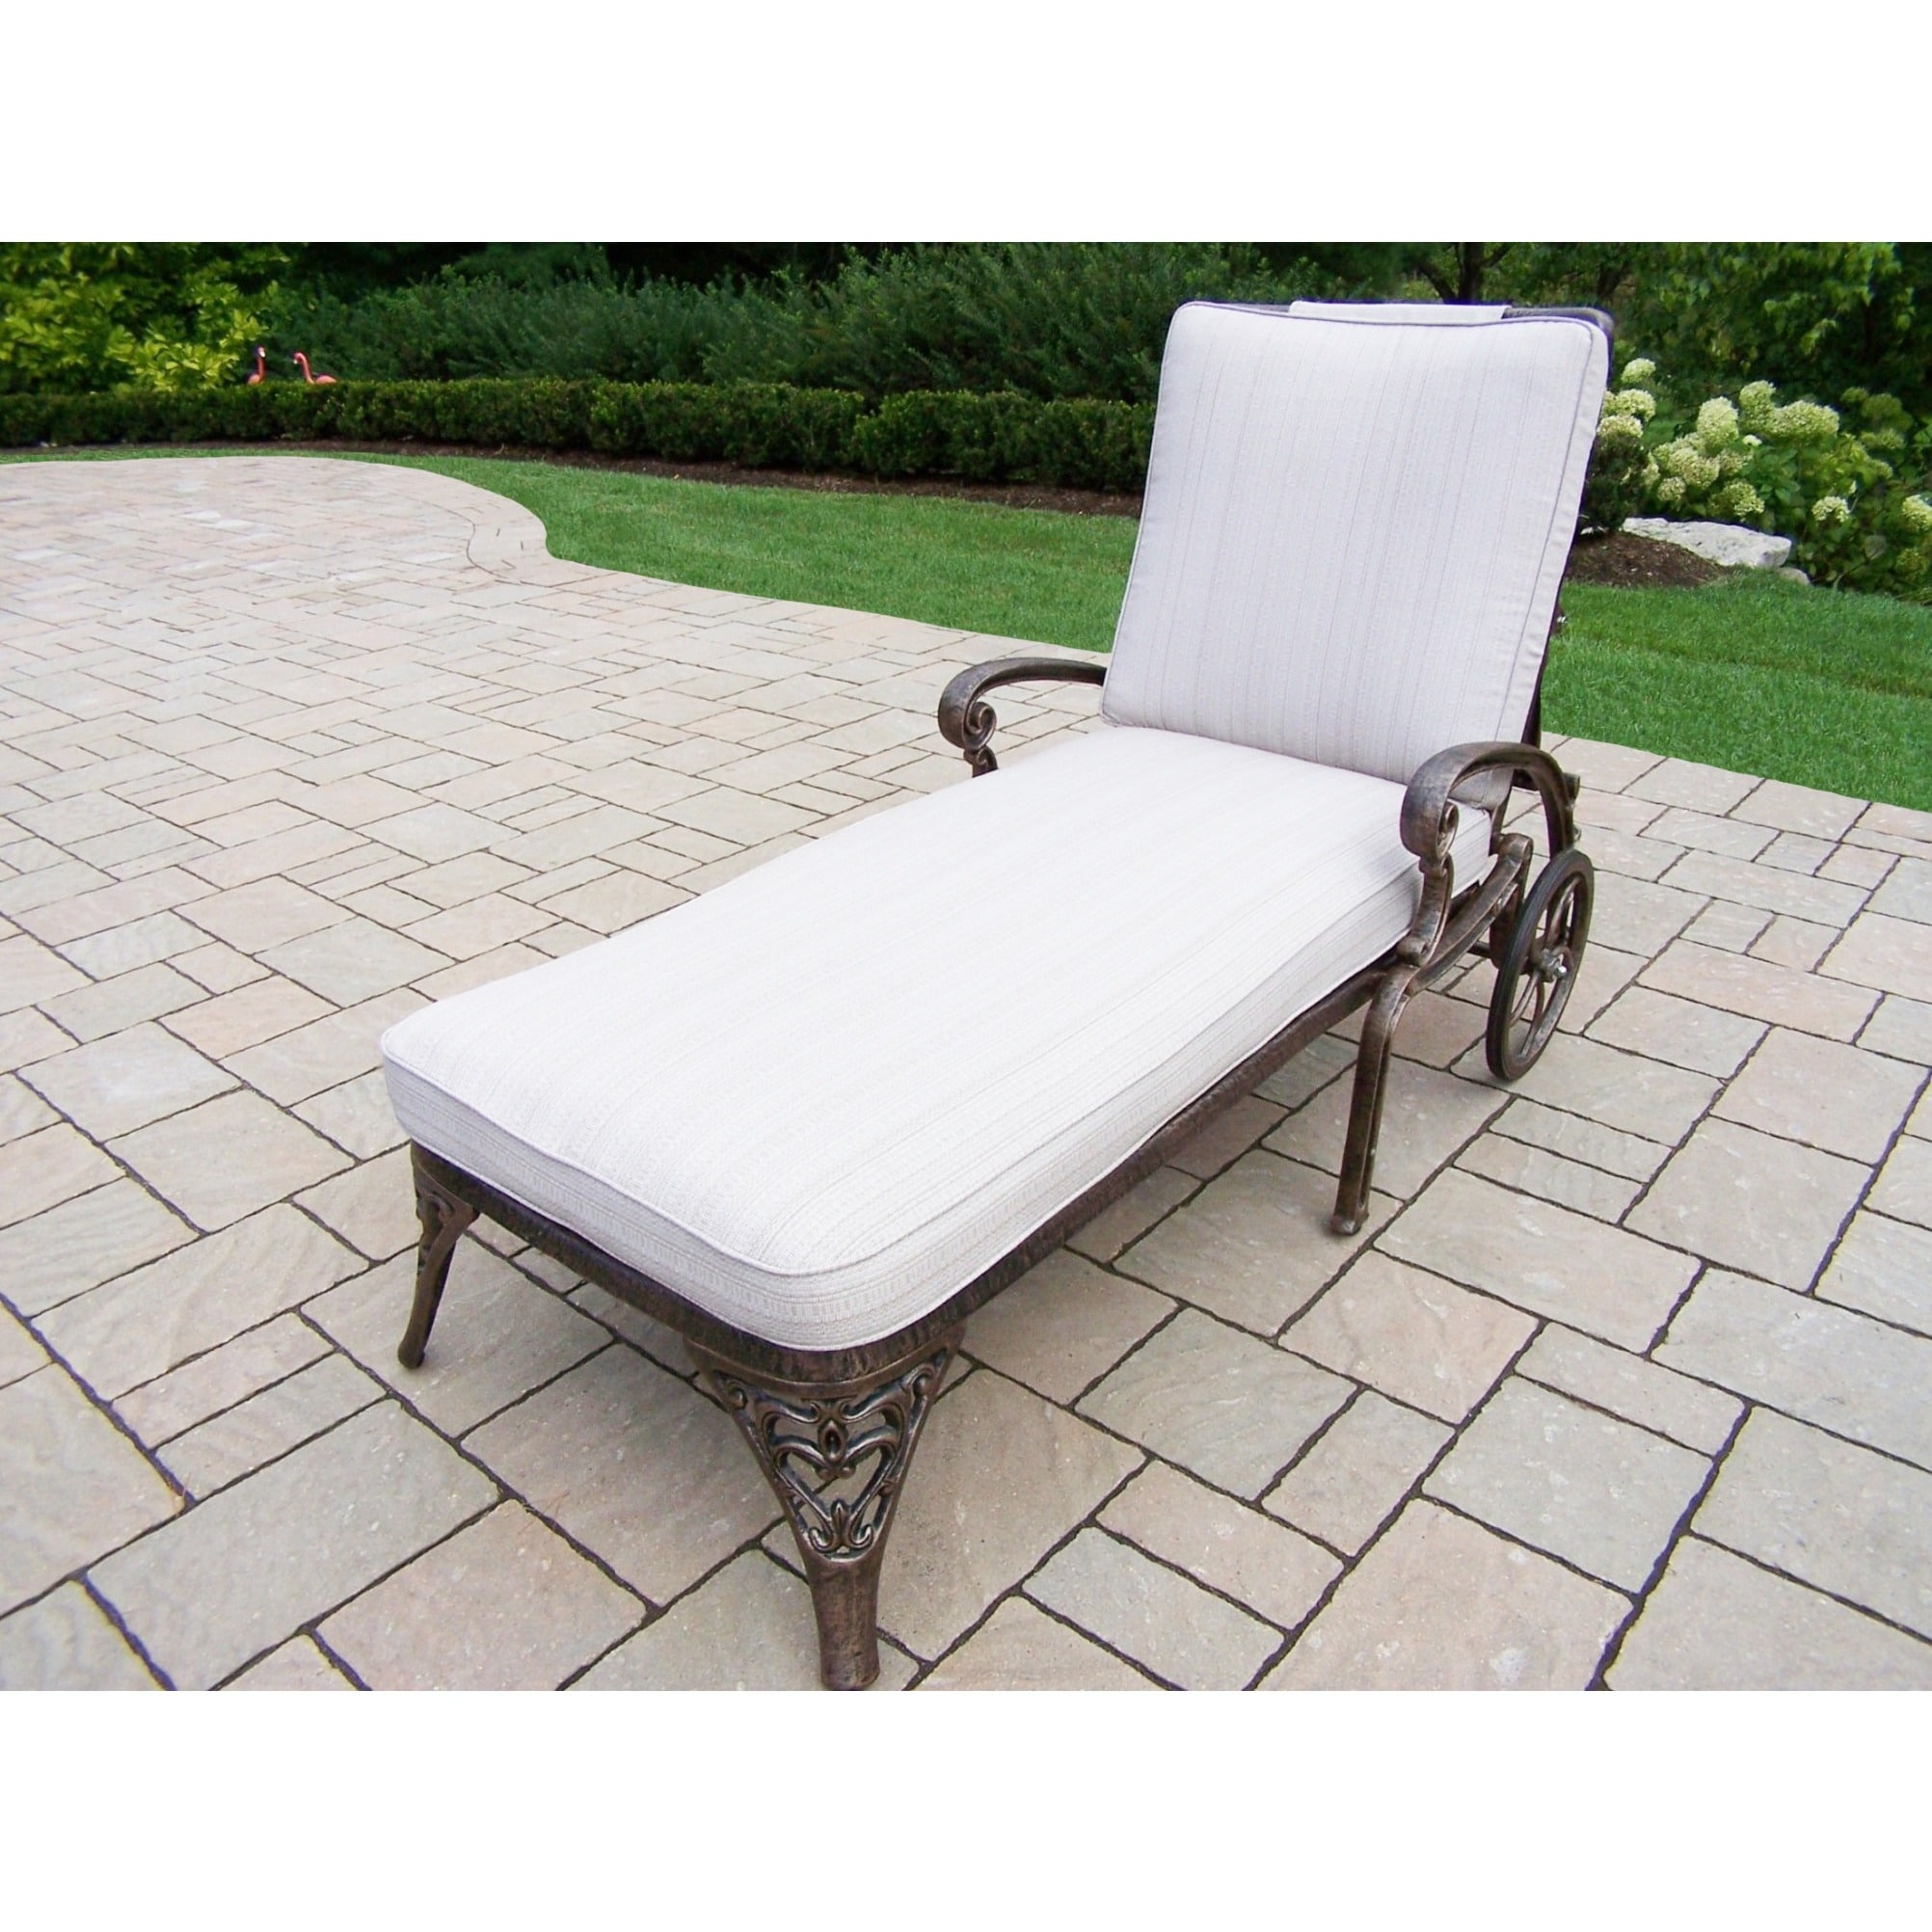 Cast Aluminum Chaise Lounge With Wheels